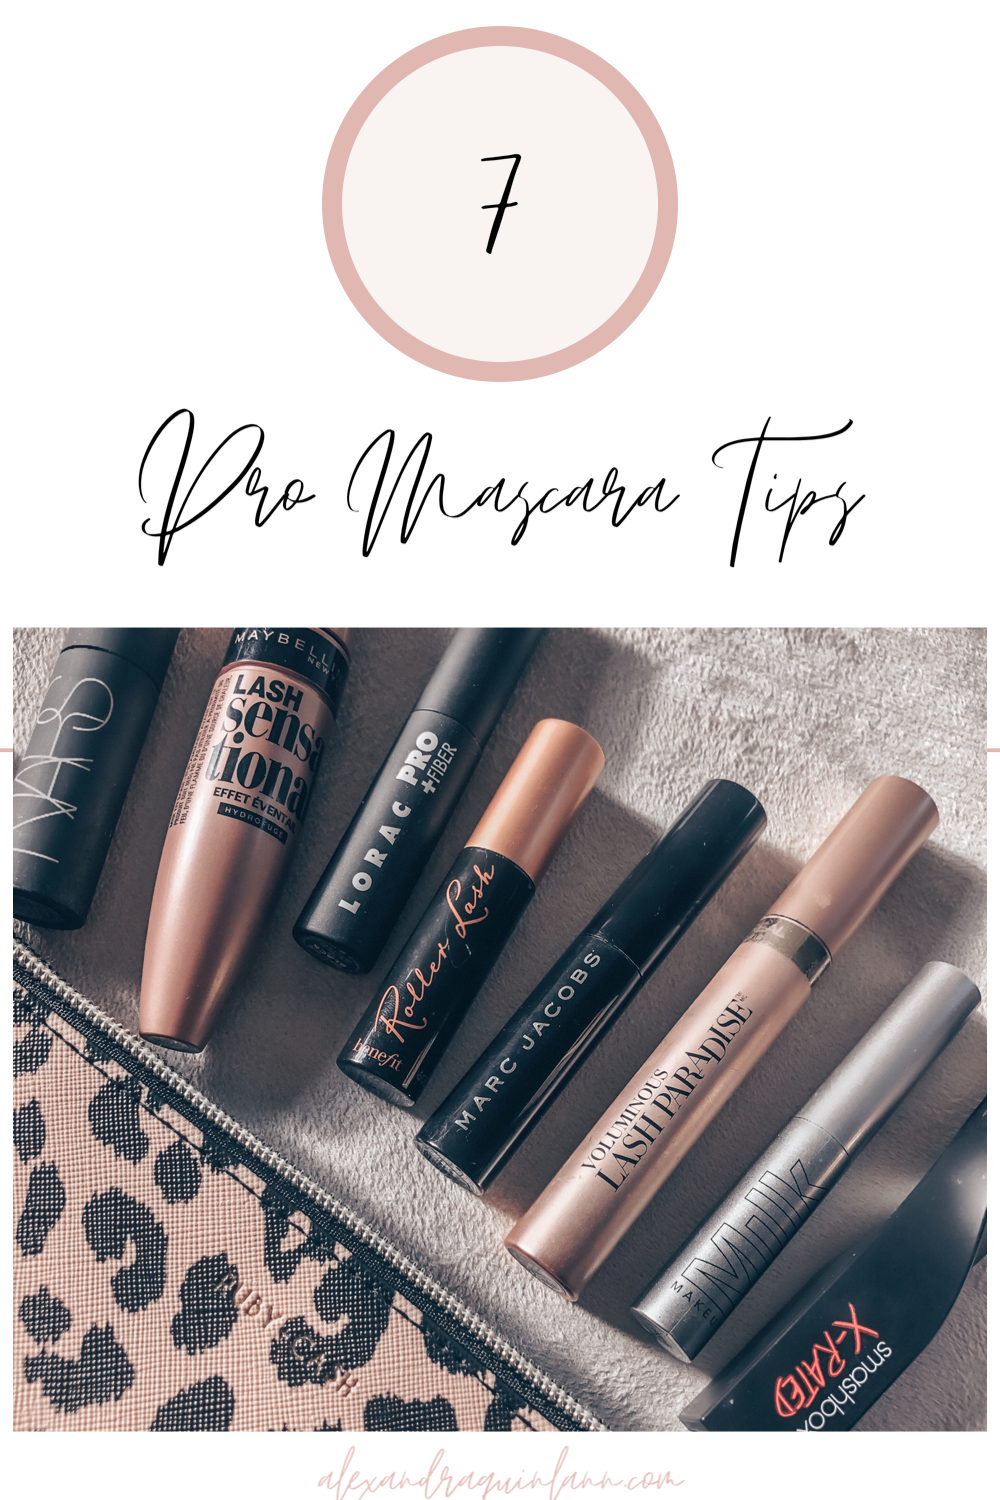 7 Mascara Tips For Beginners in 2020 Mascara tips